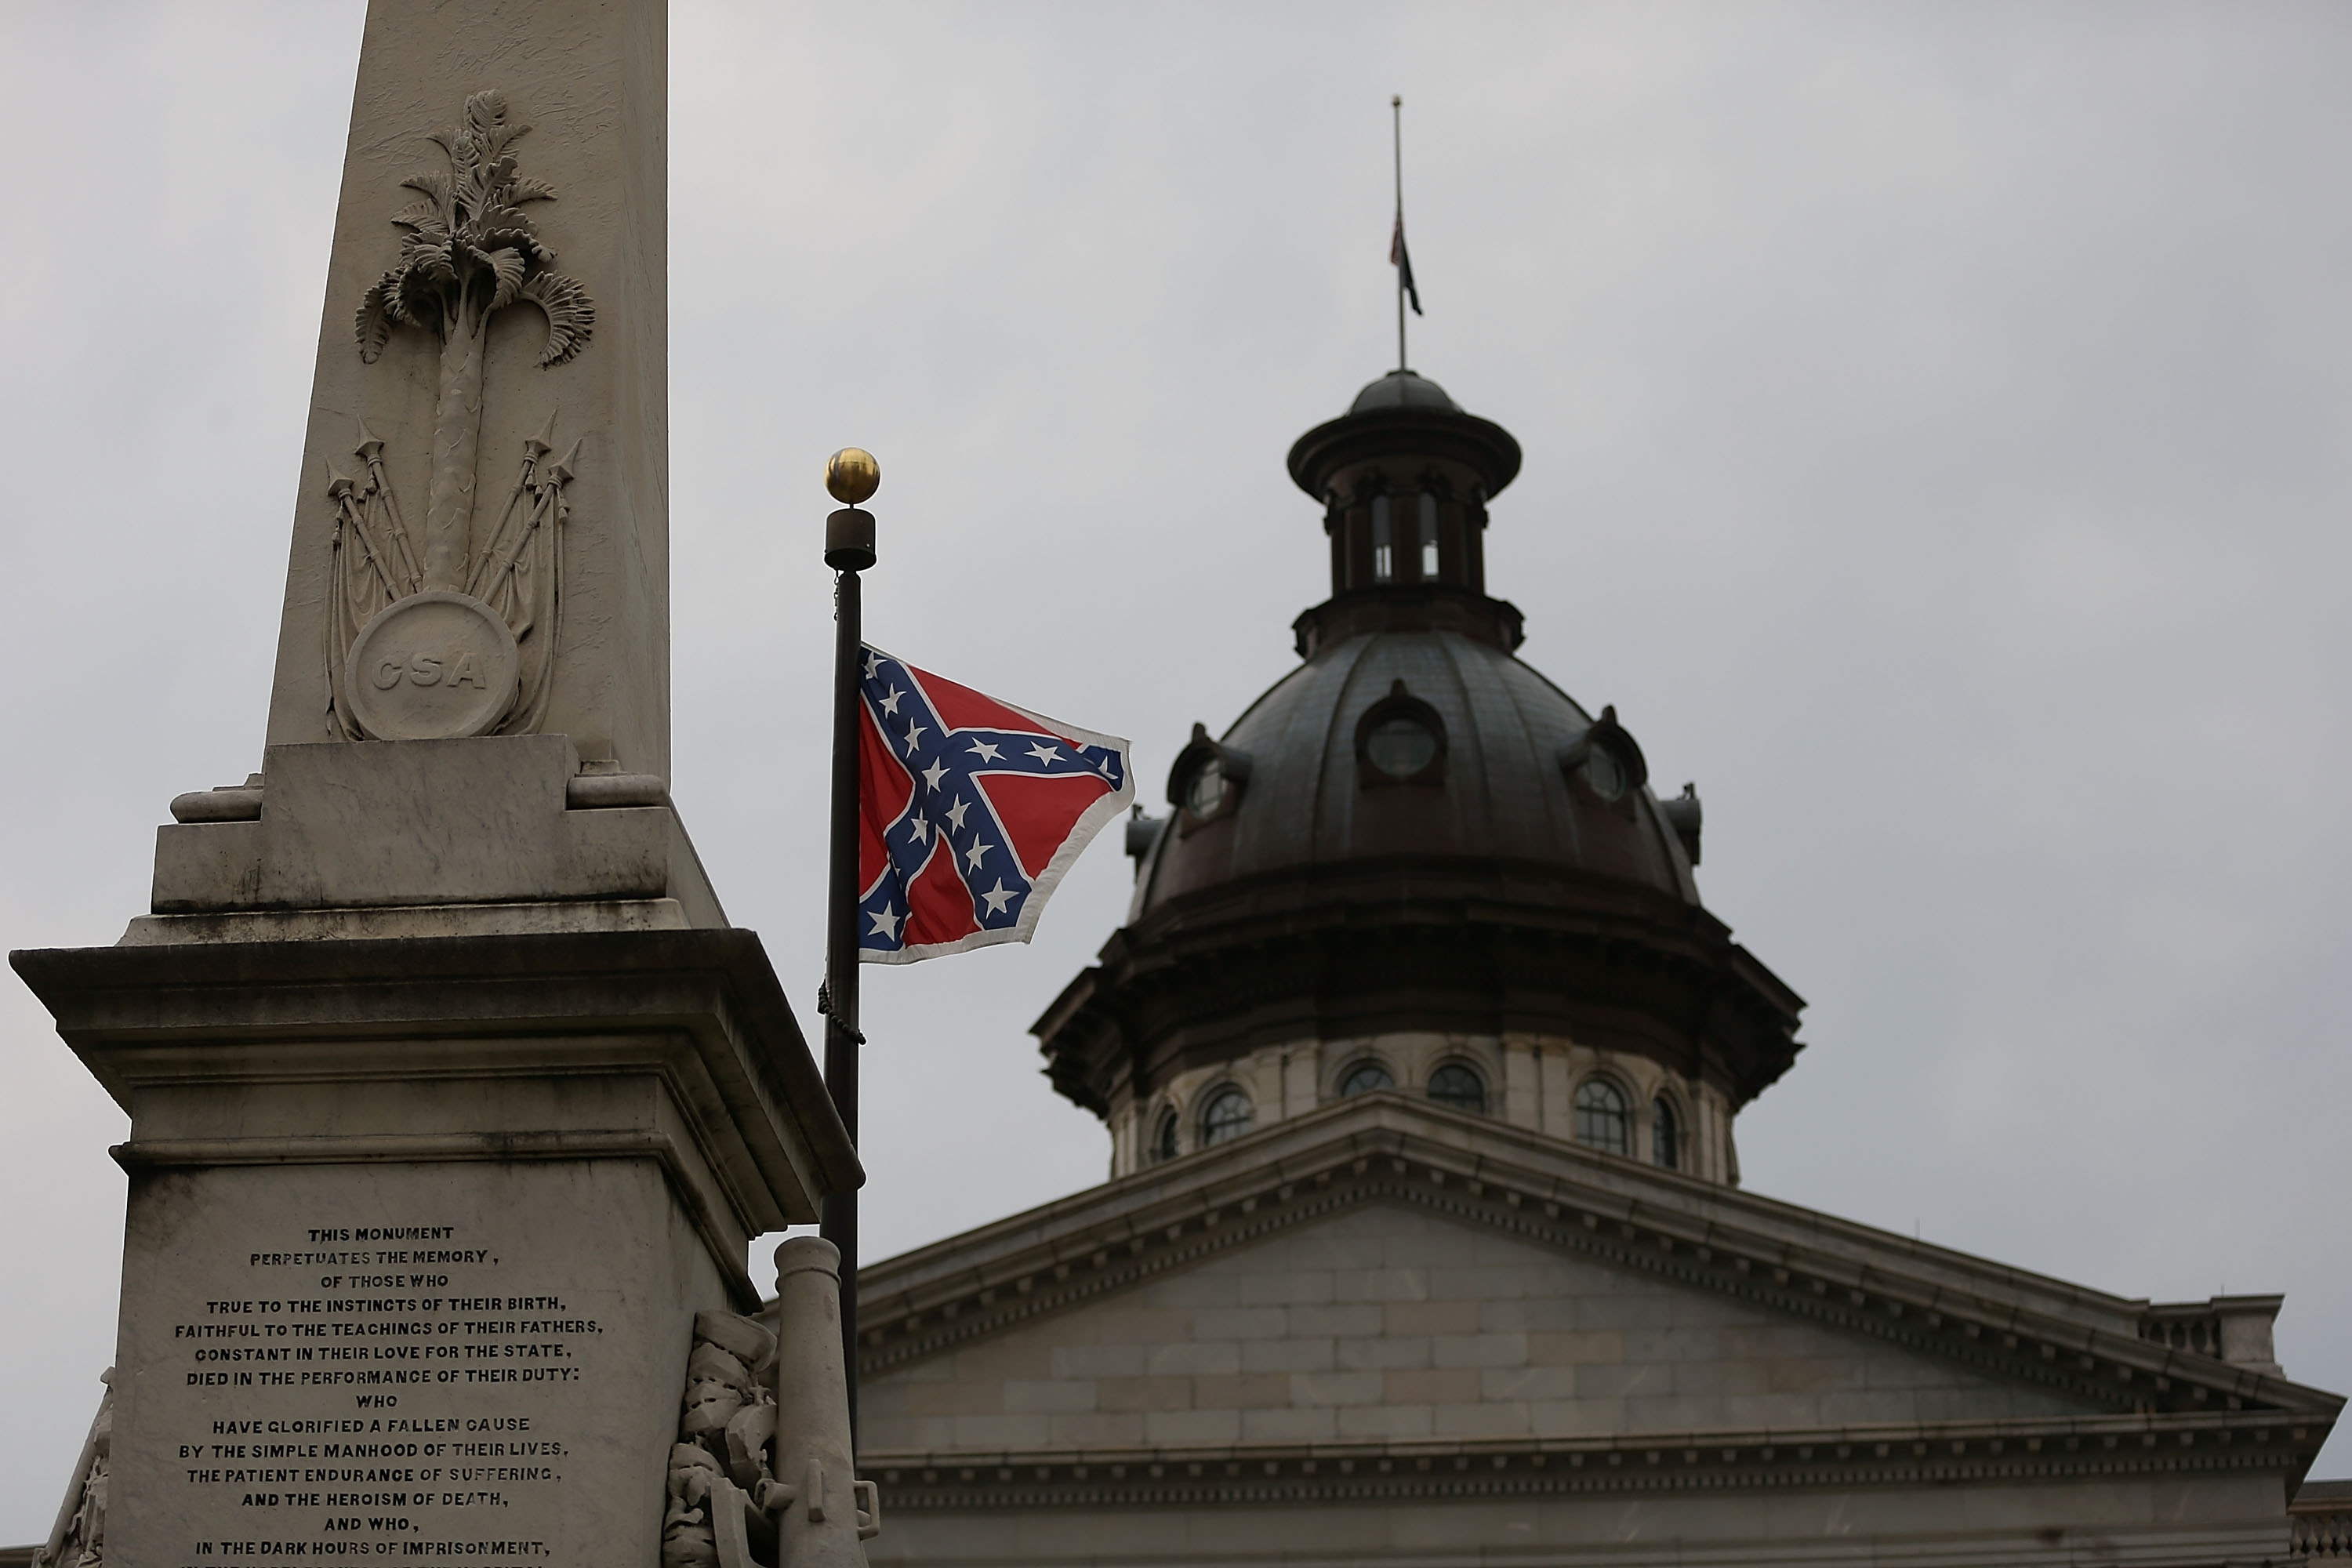 The Confederate battle flag flying at South Carolina's Statehouse is an unacceptable show of  defiance.